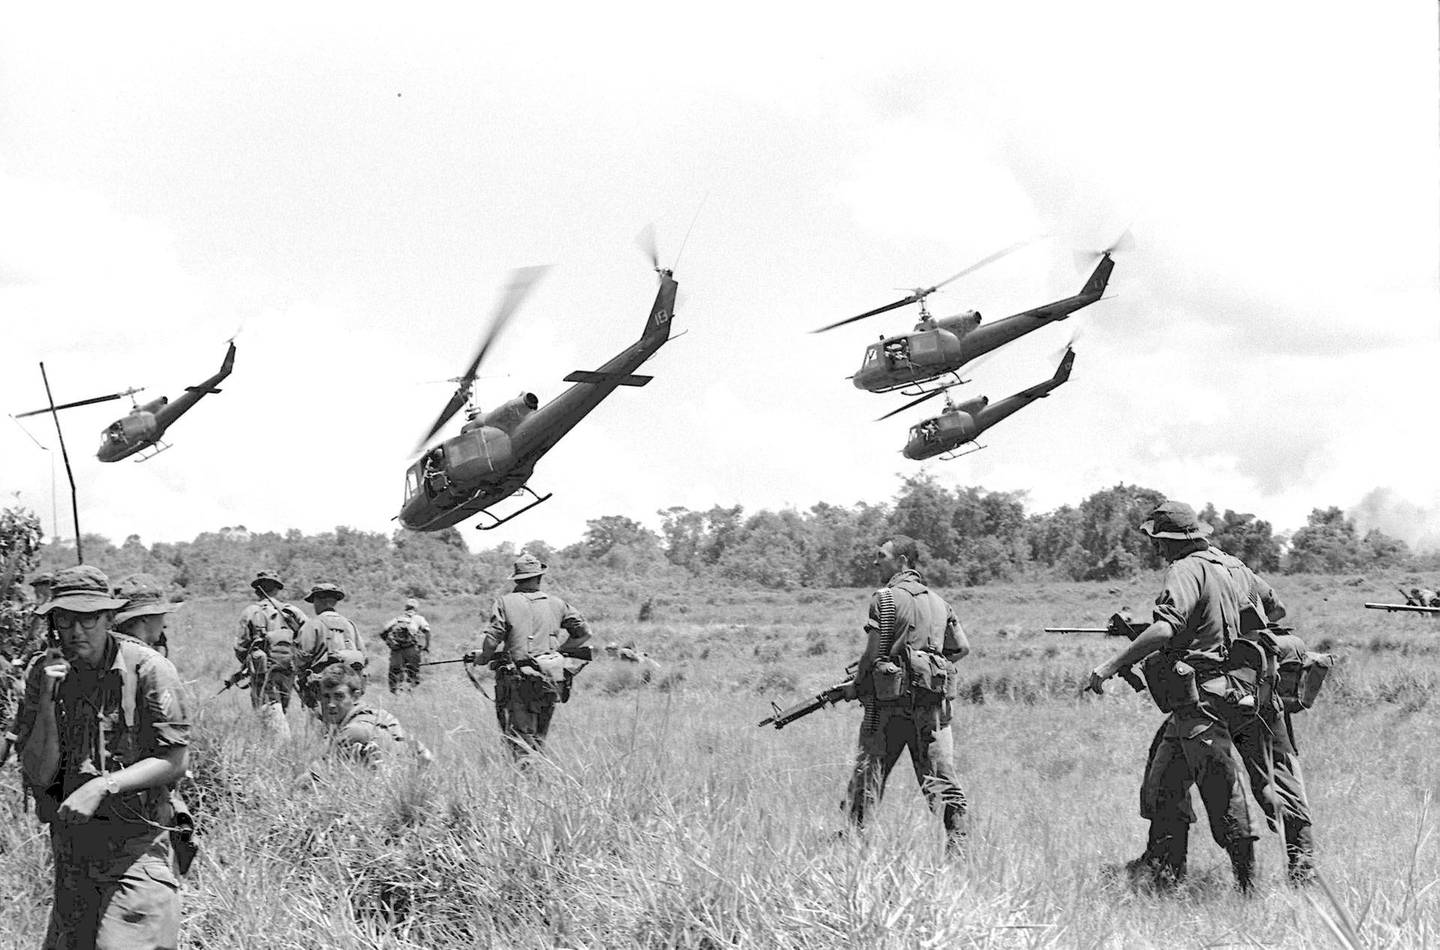 AUSTRALIAN TROOPS ON THEIR TOUR OF DUTY IN VIETNAM. PHOTO WAS TAKEN IN JUNE-JULY 1965. (Photo by Stuart Macgladrie/The Sydney Morning Herald/Fairfax Media via Getty Images via Getty Images)